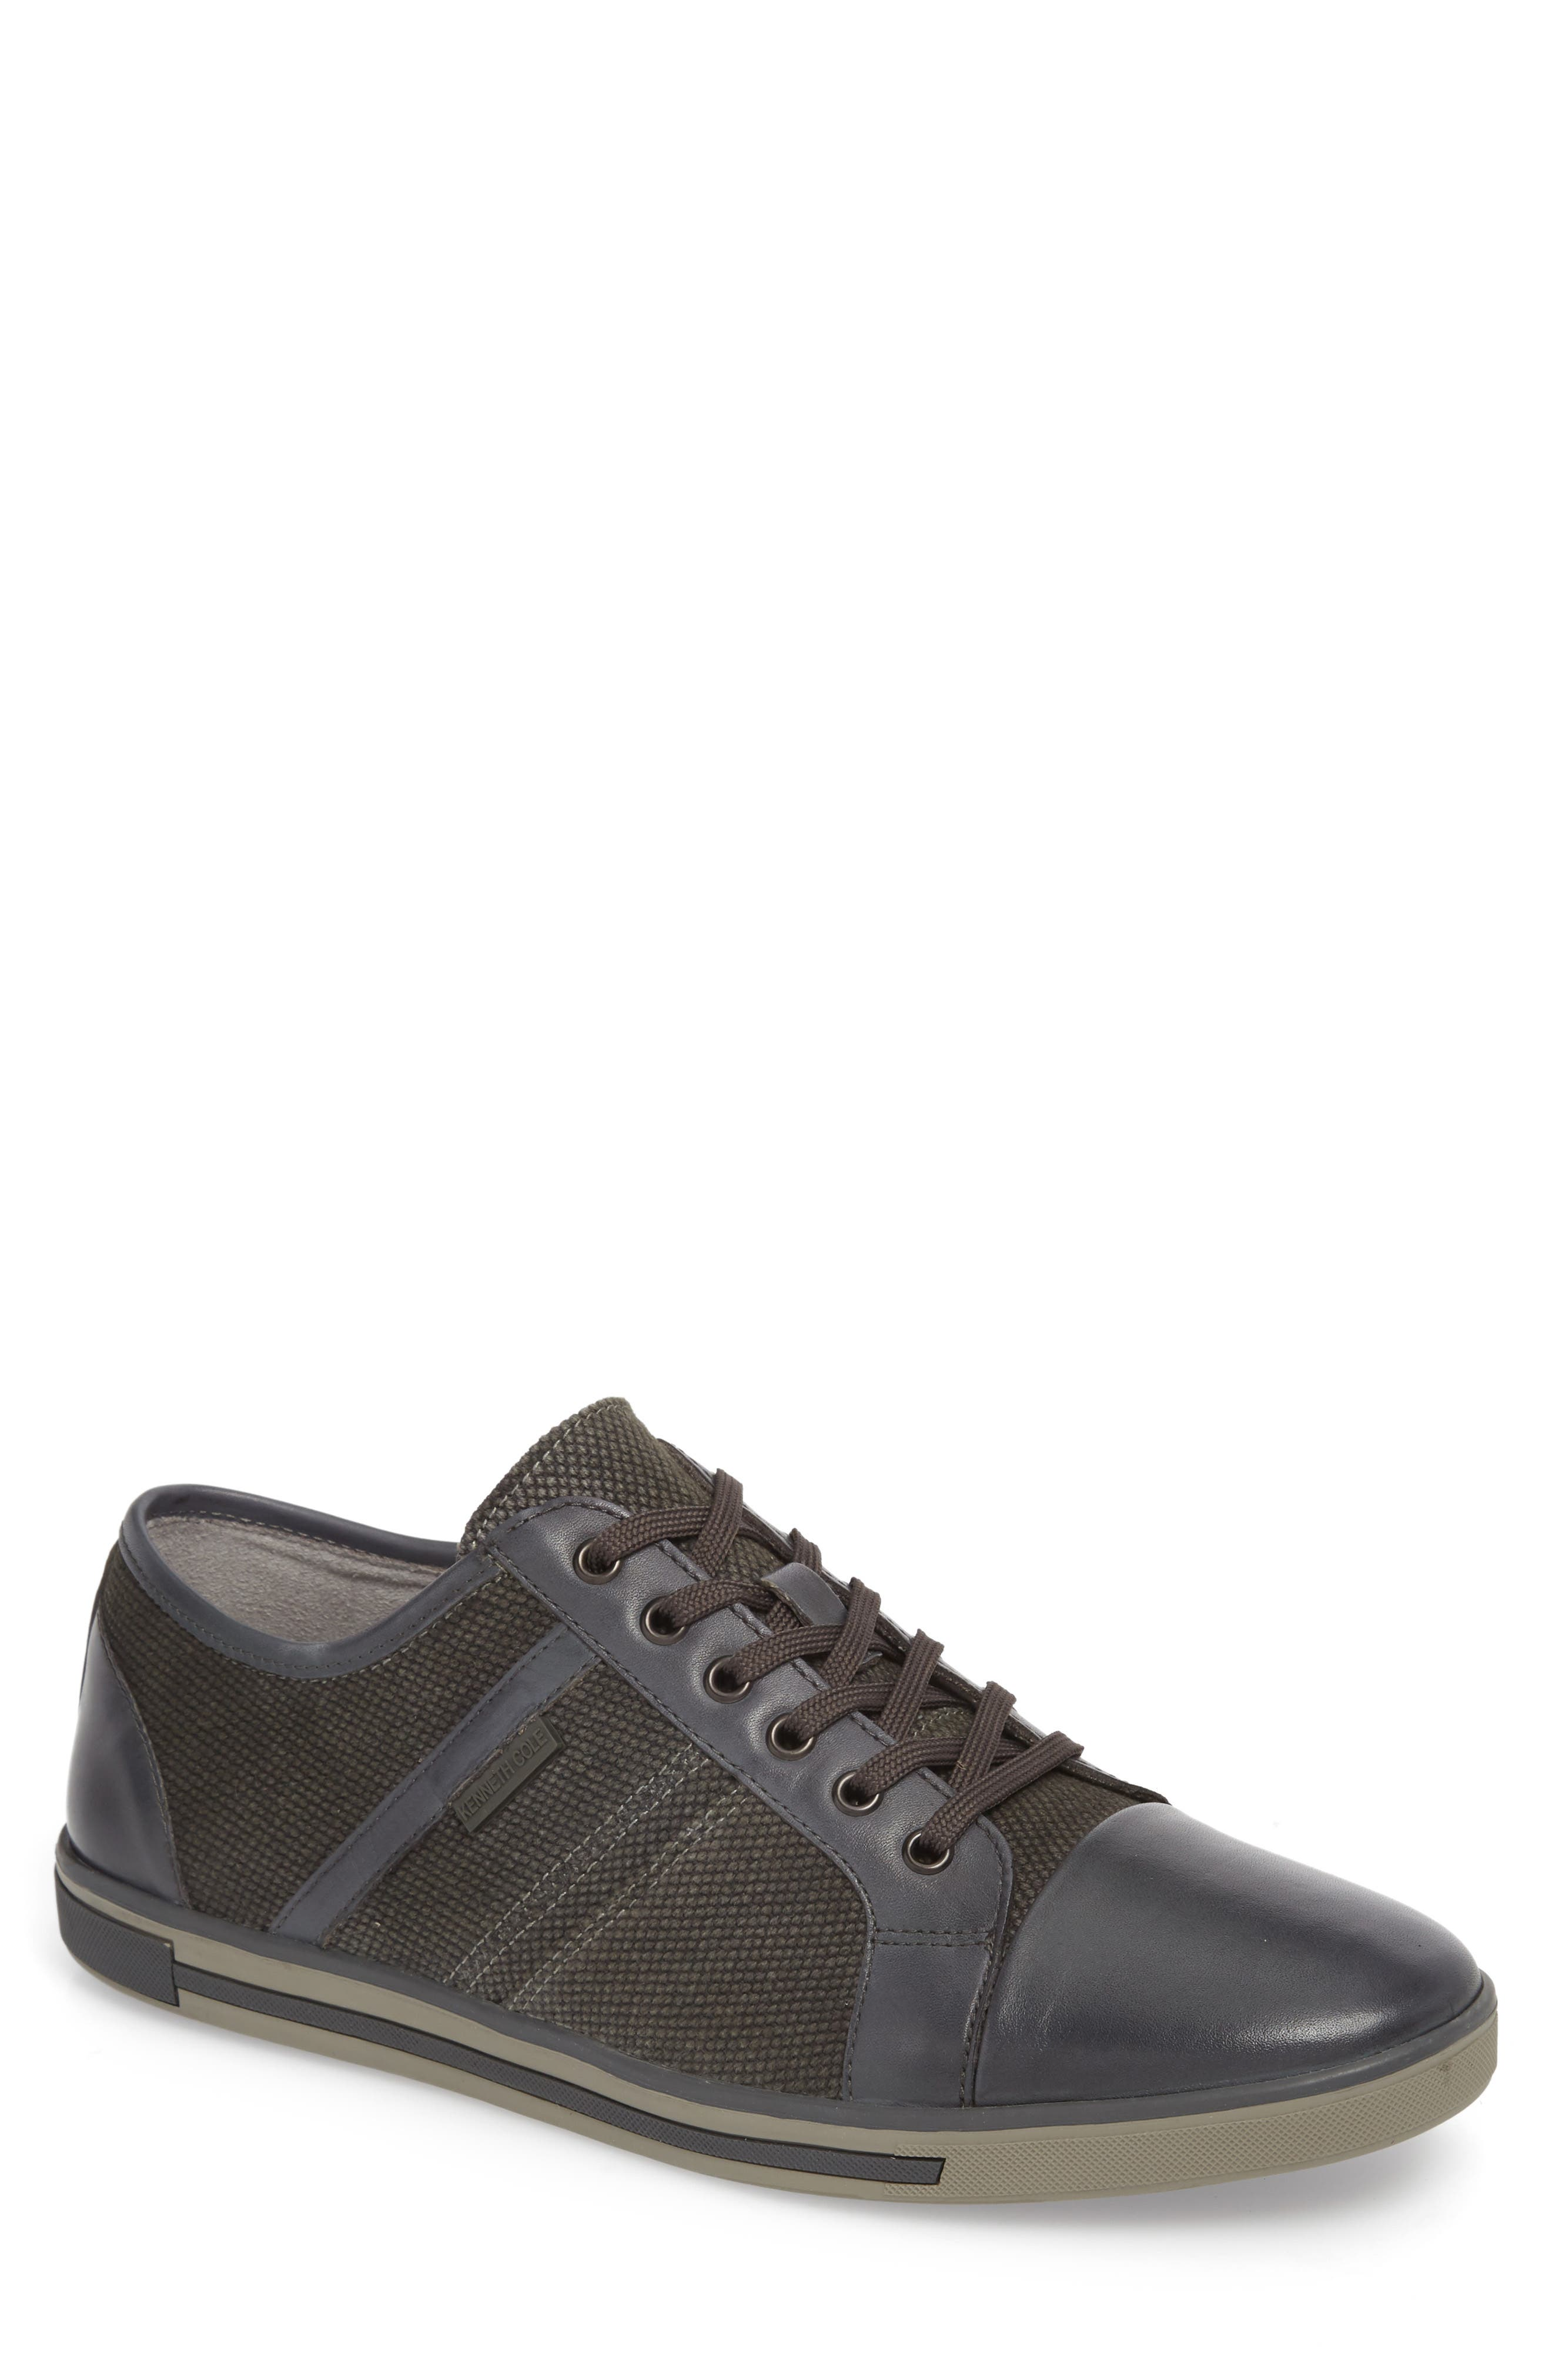 Initial Step Sneaker,                         Main,                         color, Grey Leather/ Textile